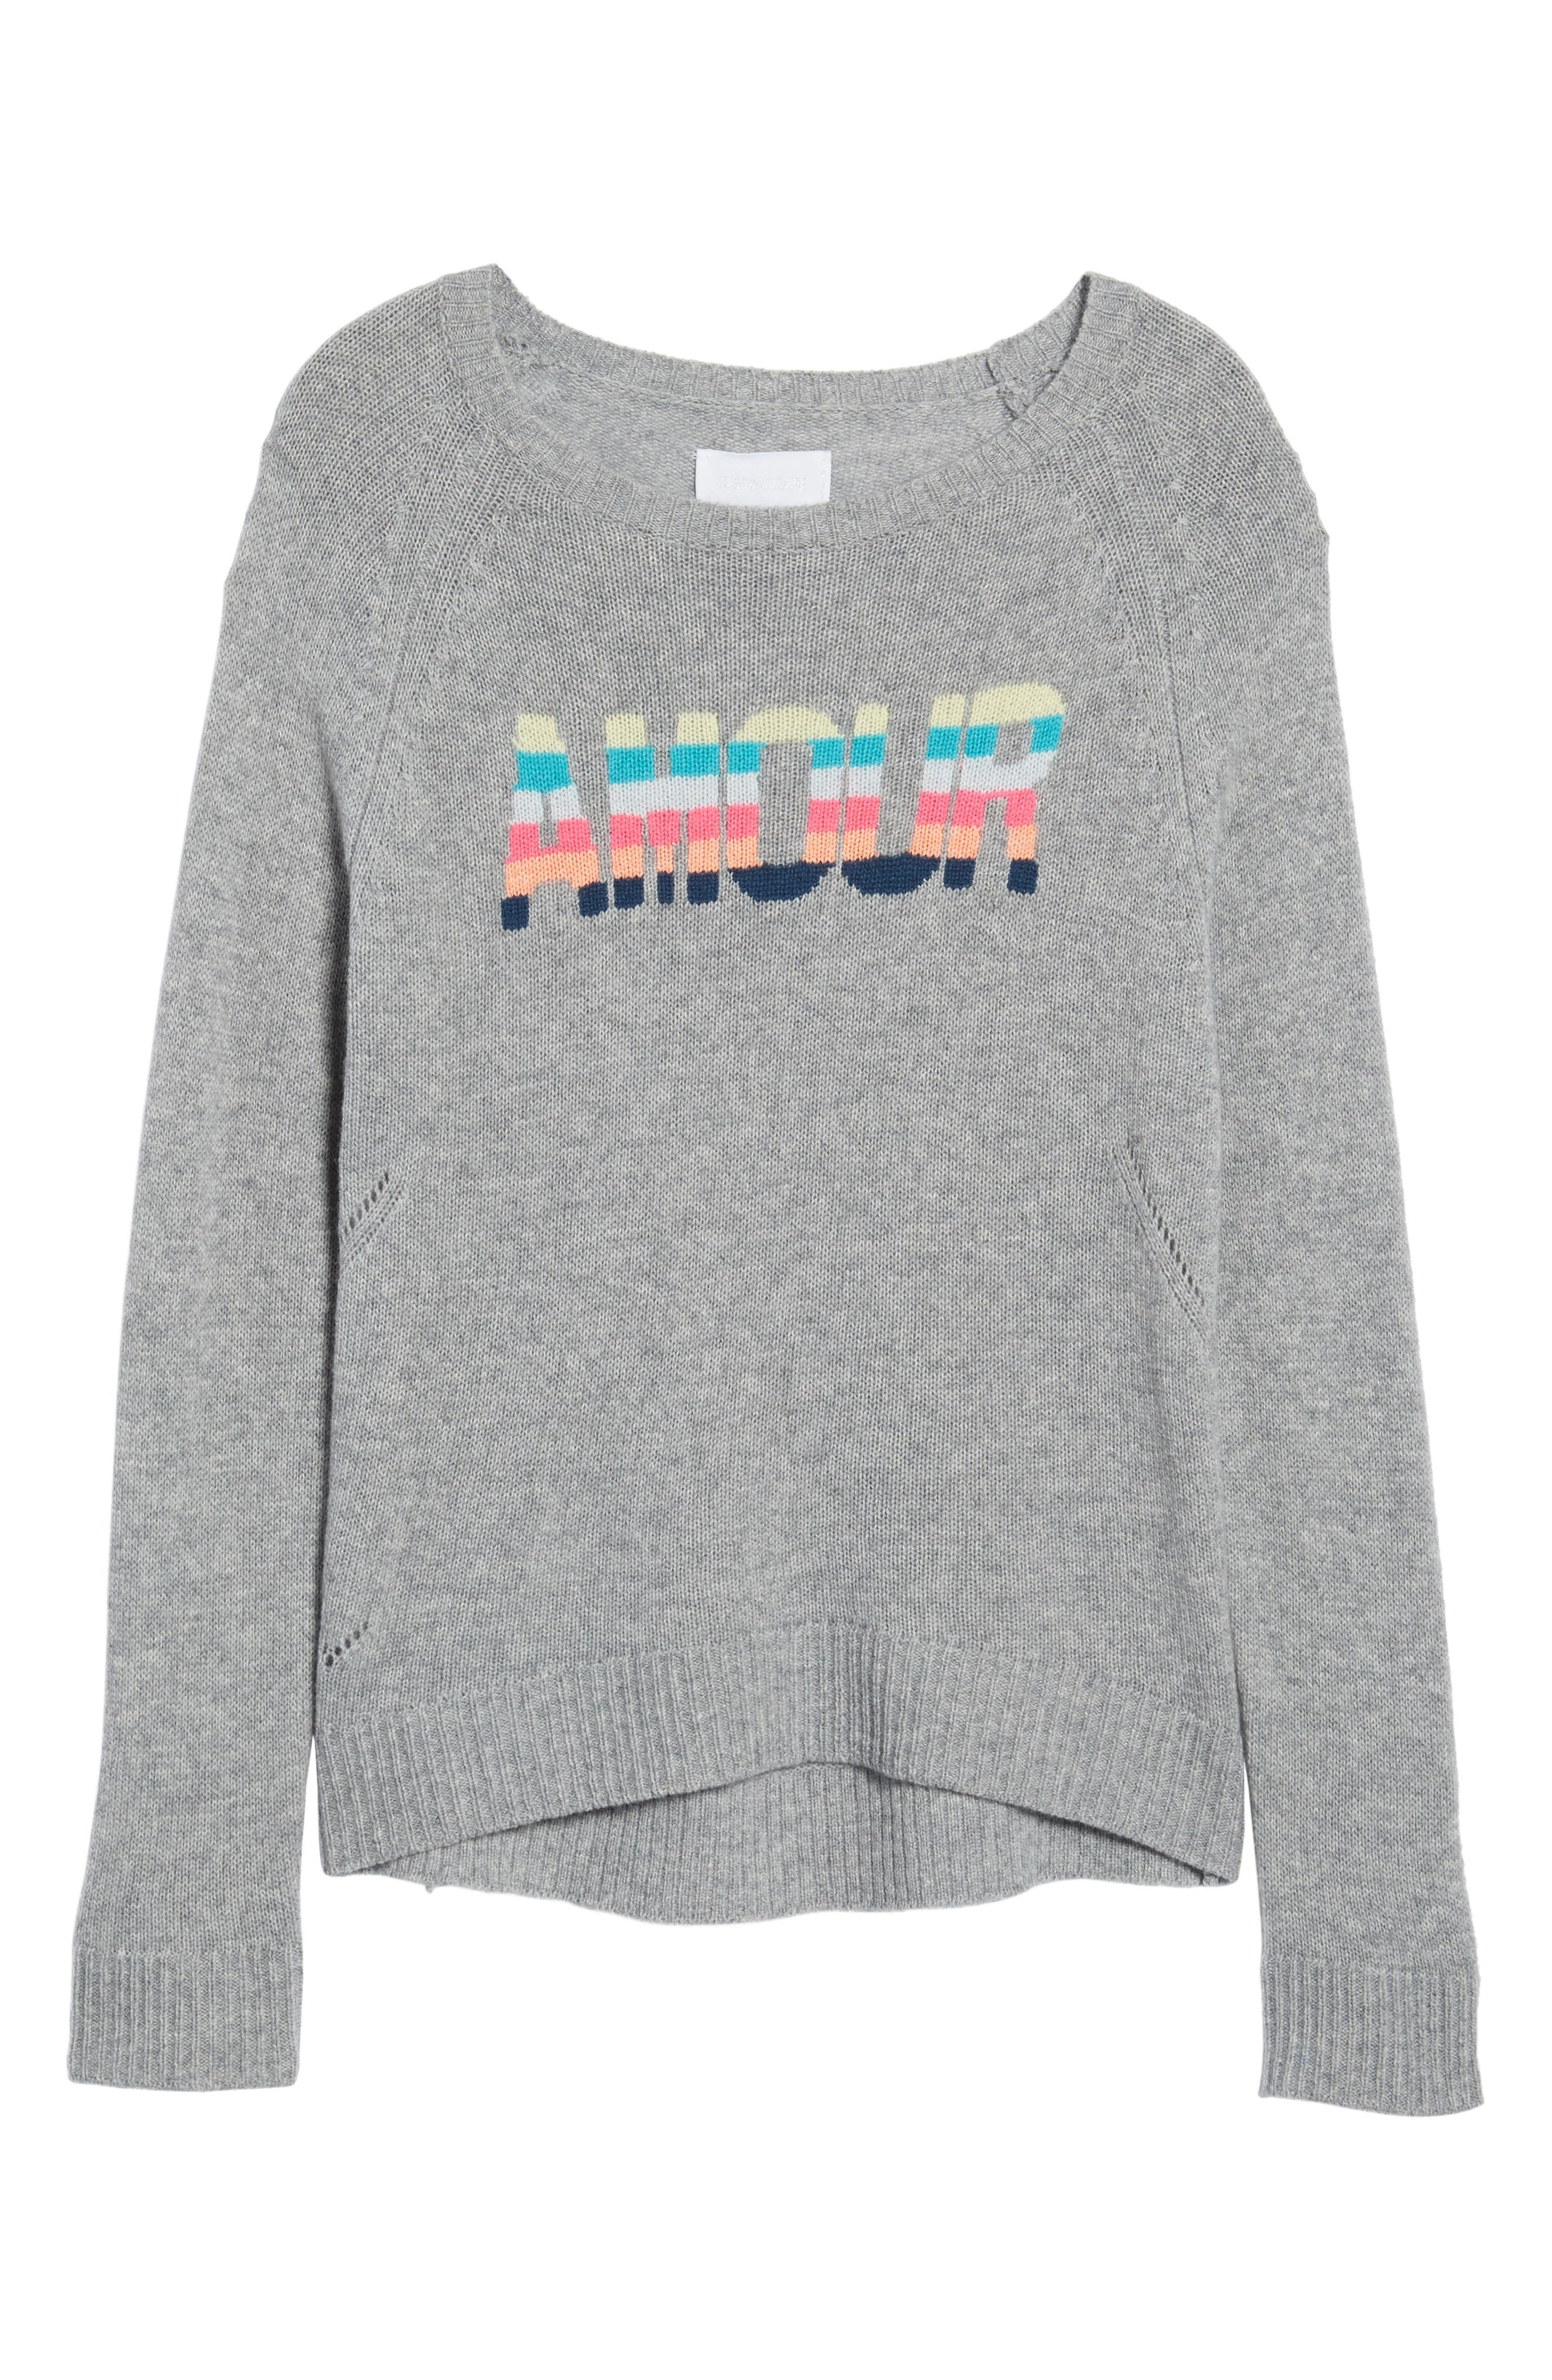 Baly Bis Cashmere Sweater,                             Alternate thumbnail 6, color,